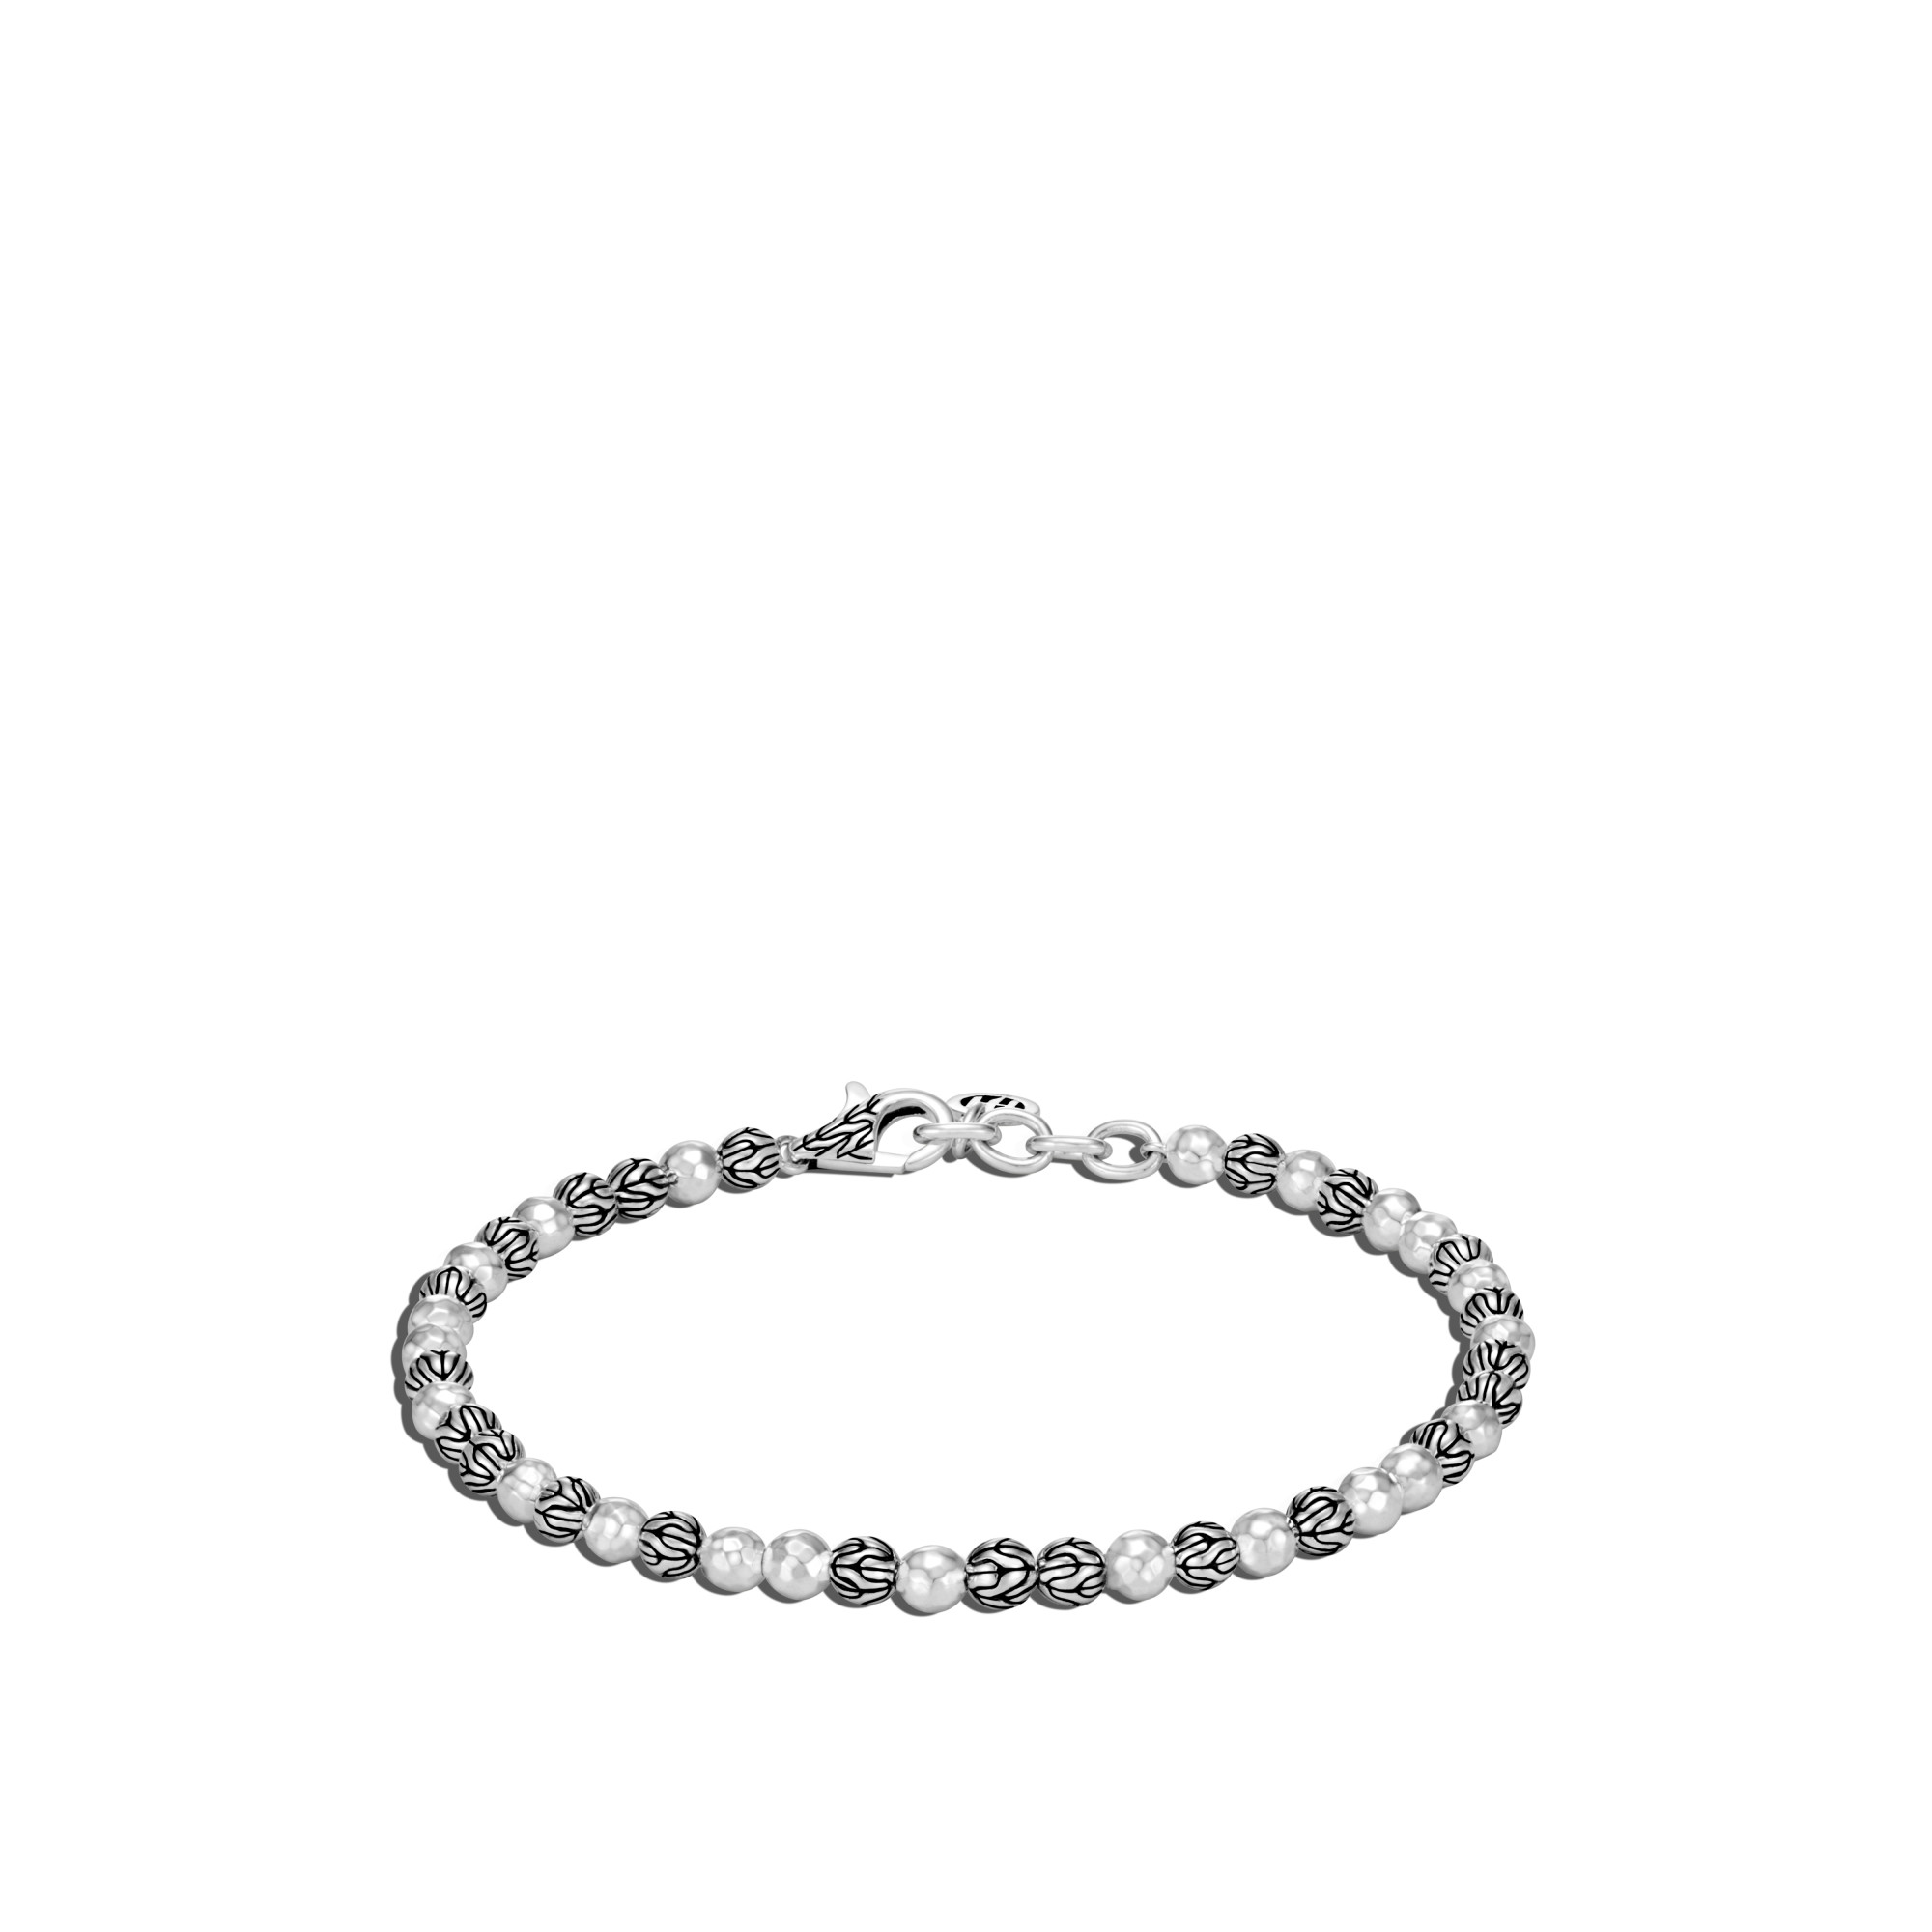 John Hardy CLASSIC CHAIN 4MM BEAD BRACELET, HAMMERED STERLING SILVER